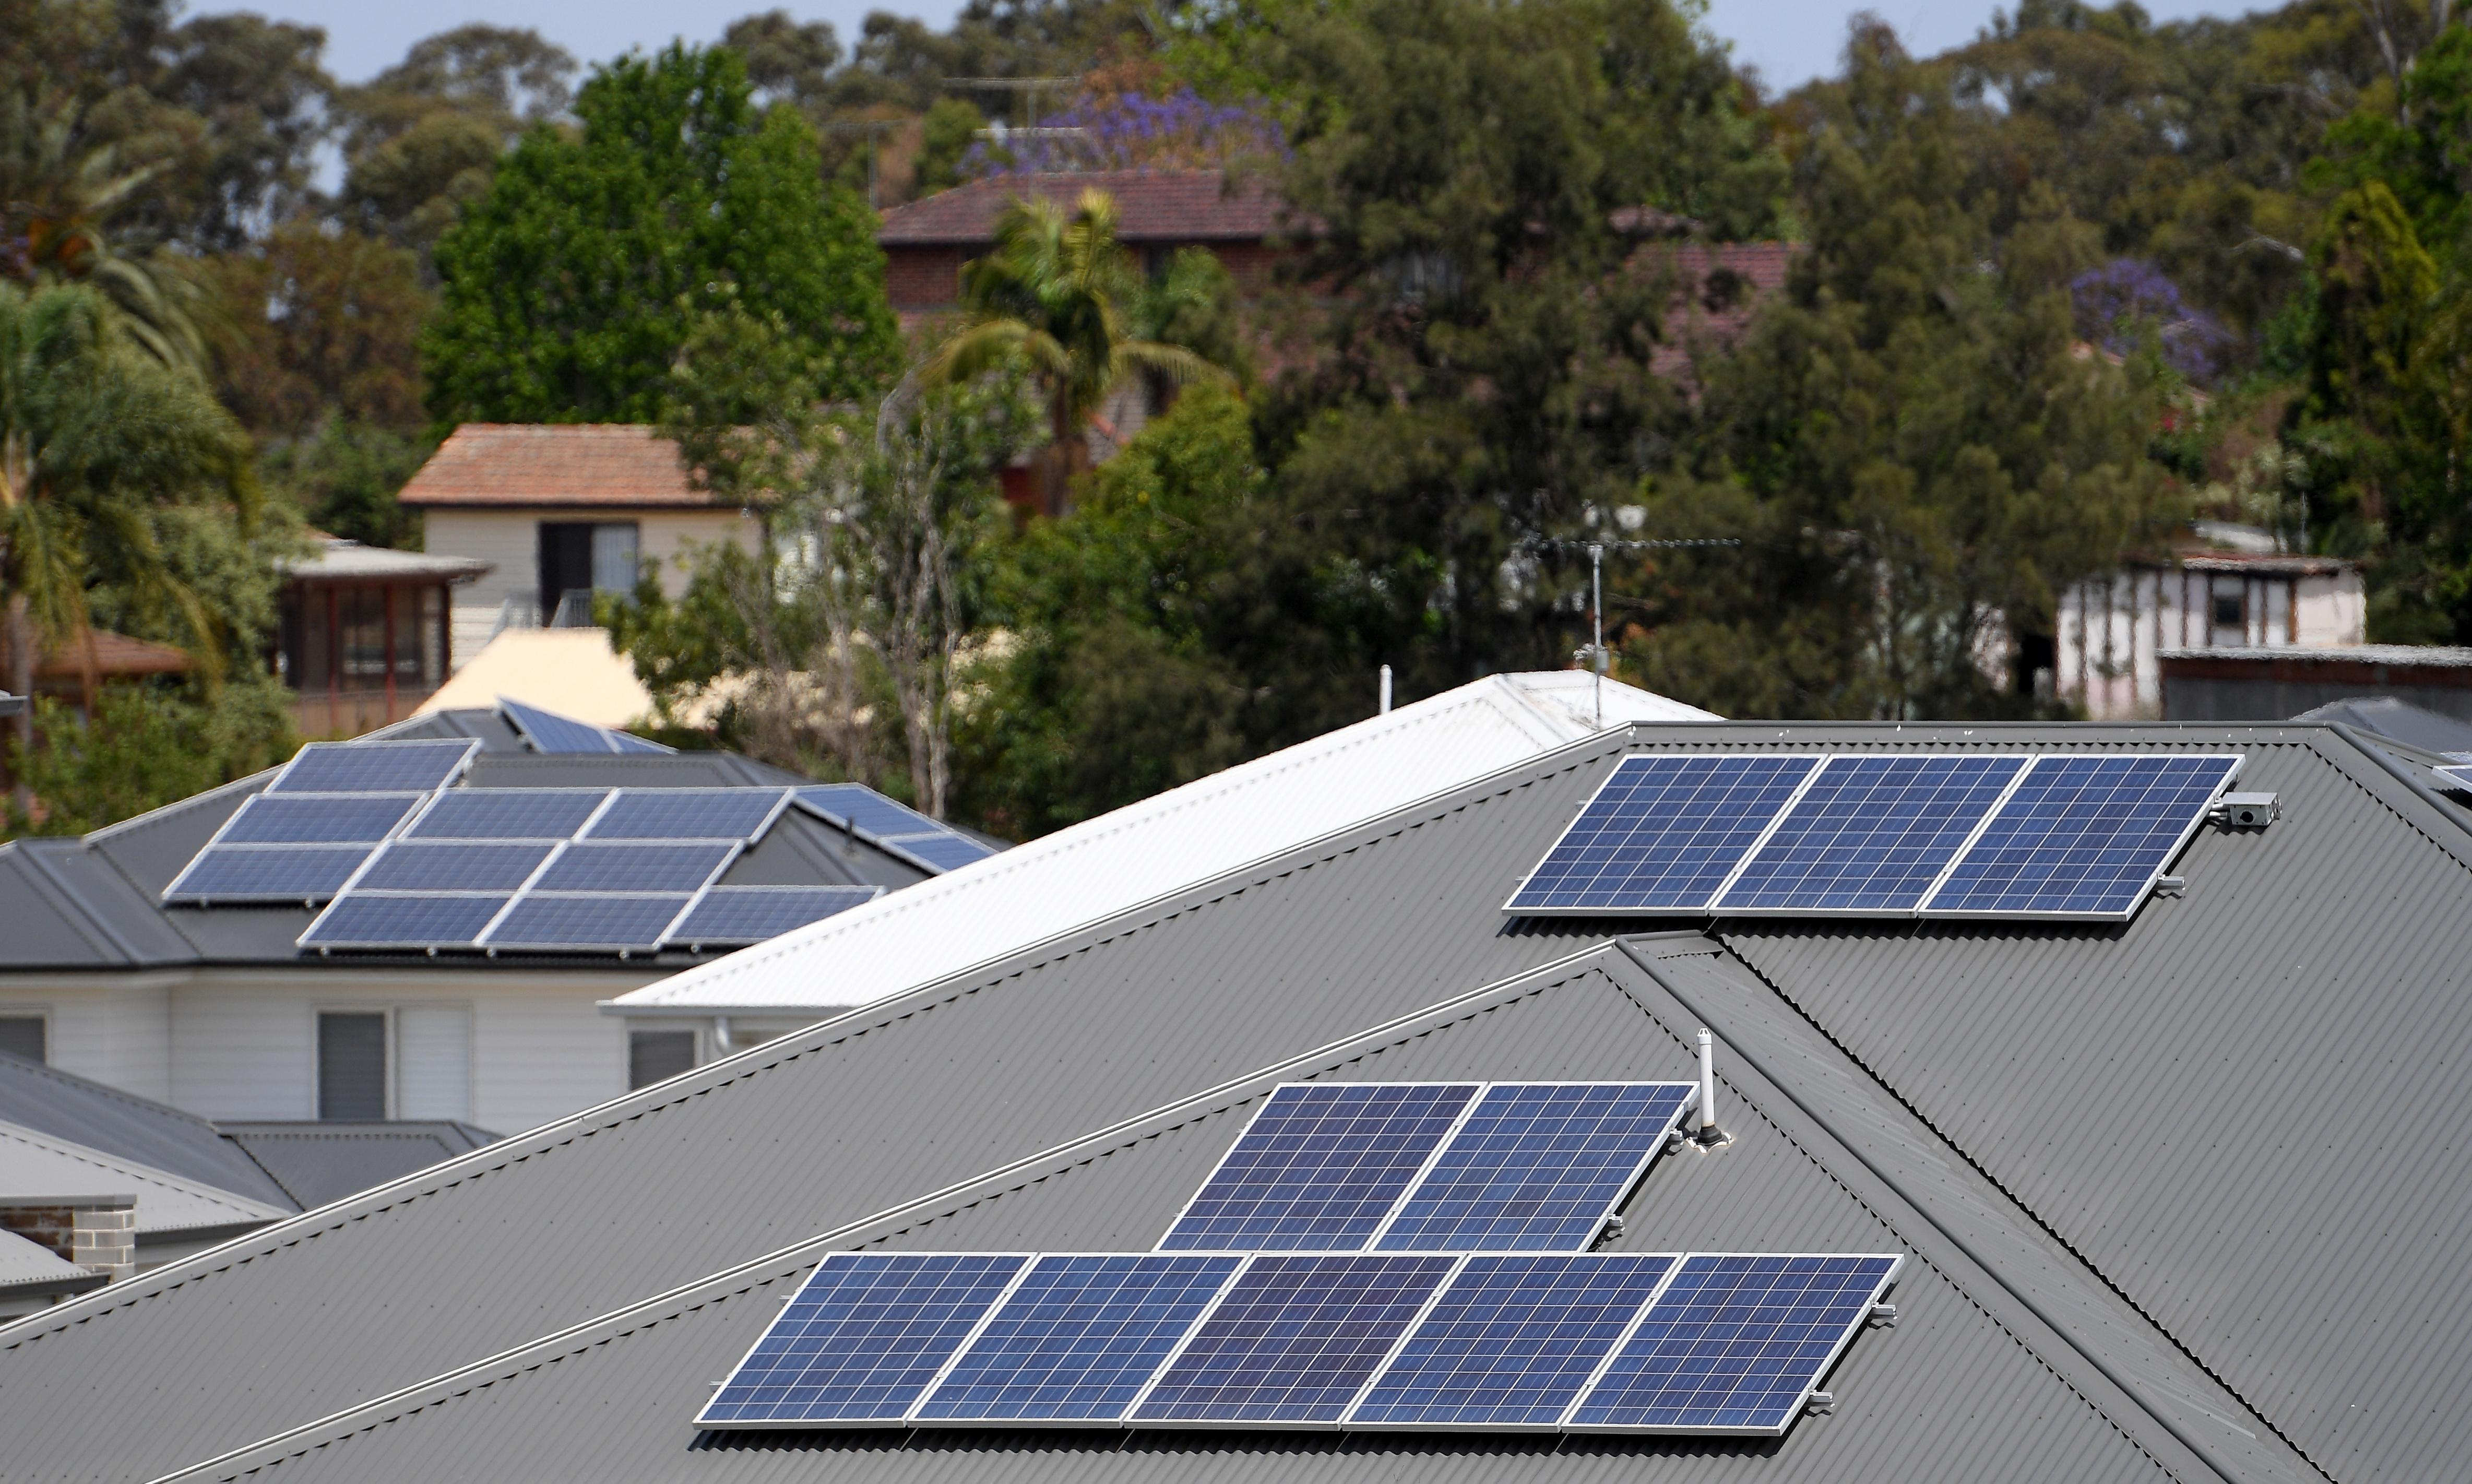 Is Australia on the verge of having too much solar energy?